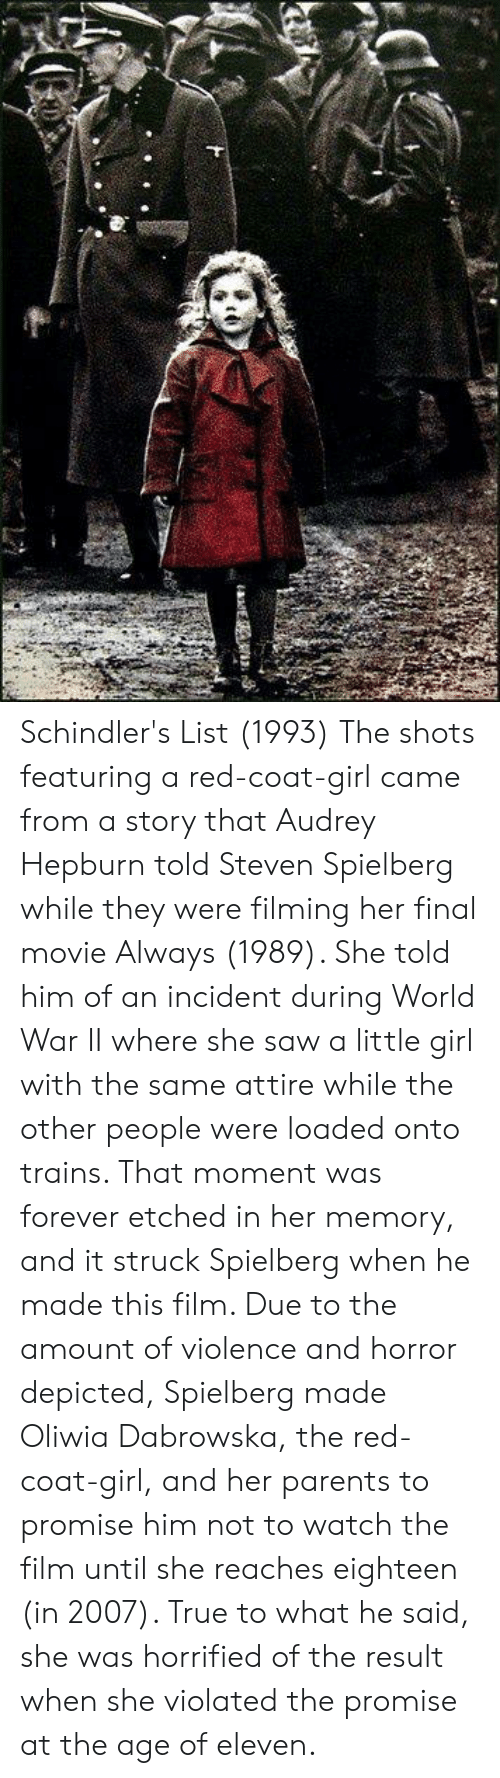 Memes, Parents, and Saw: Schindler's List (1993)  The shots featuring a red-coat-girl came from a story that Audrey Hepburn told Steven Spielberg while they were filming her final movie Always (1989). She told him of an incident during World War II where she saw a little girl with the same attire while the other people were loaded onto trains. That moment was forever etched in her memory, and it struck Spielberg when he made this film. Due to the amount of violence and horror depicted, Spielberg made Oliwia Dabrowska, the red-coat-girl, and her parents to promise him not to watch the film until she reaches eighteen (in 2007). True to what he said, she was horrified of the result when she violated the promise at the age of eleven.